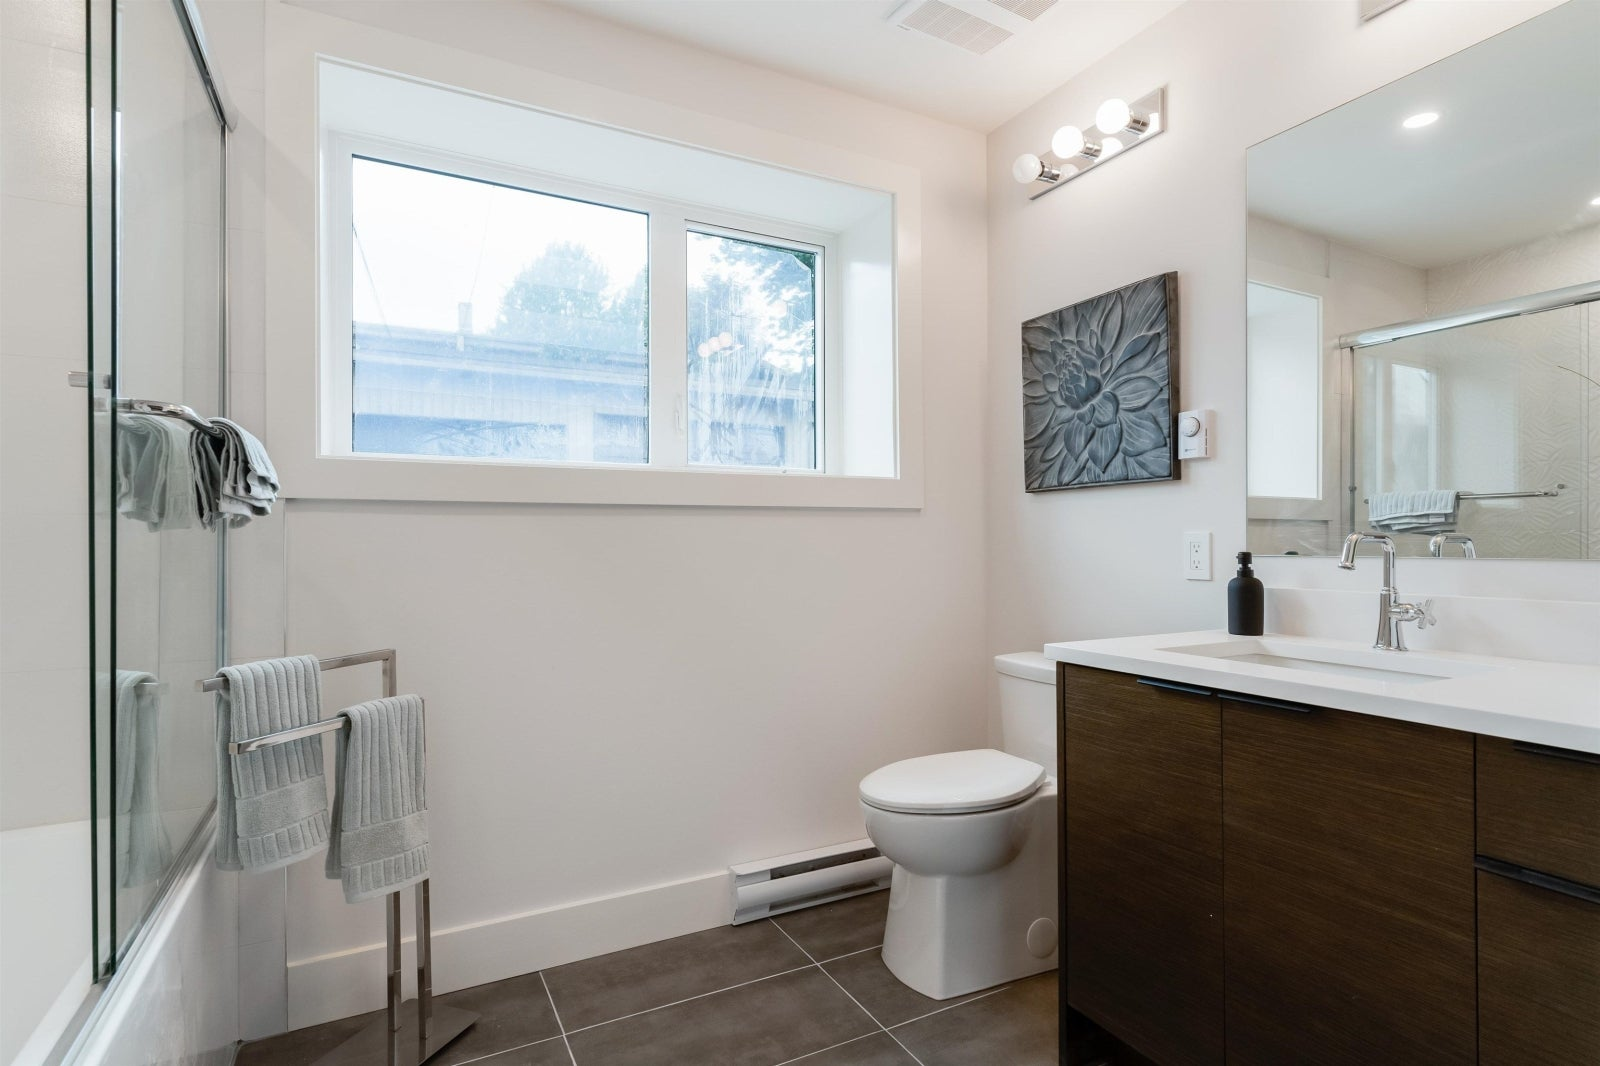 TH 1 230-232 E 8TH STREET - Central Lonsdale Townhouse for sale, 3 Bedrooms (R2610807) #17